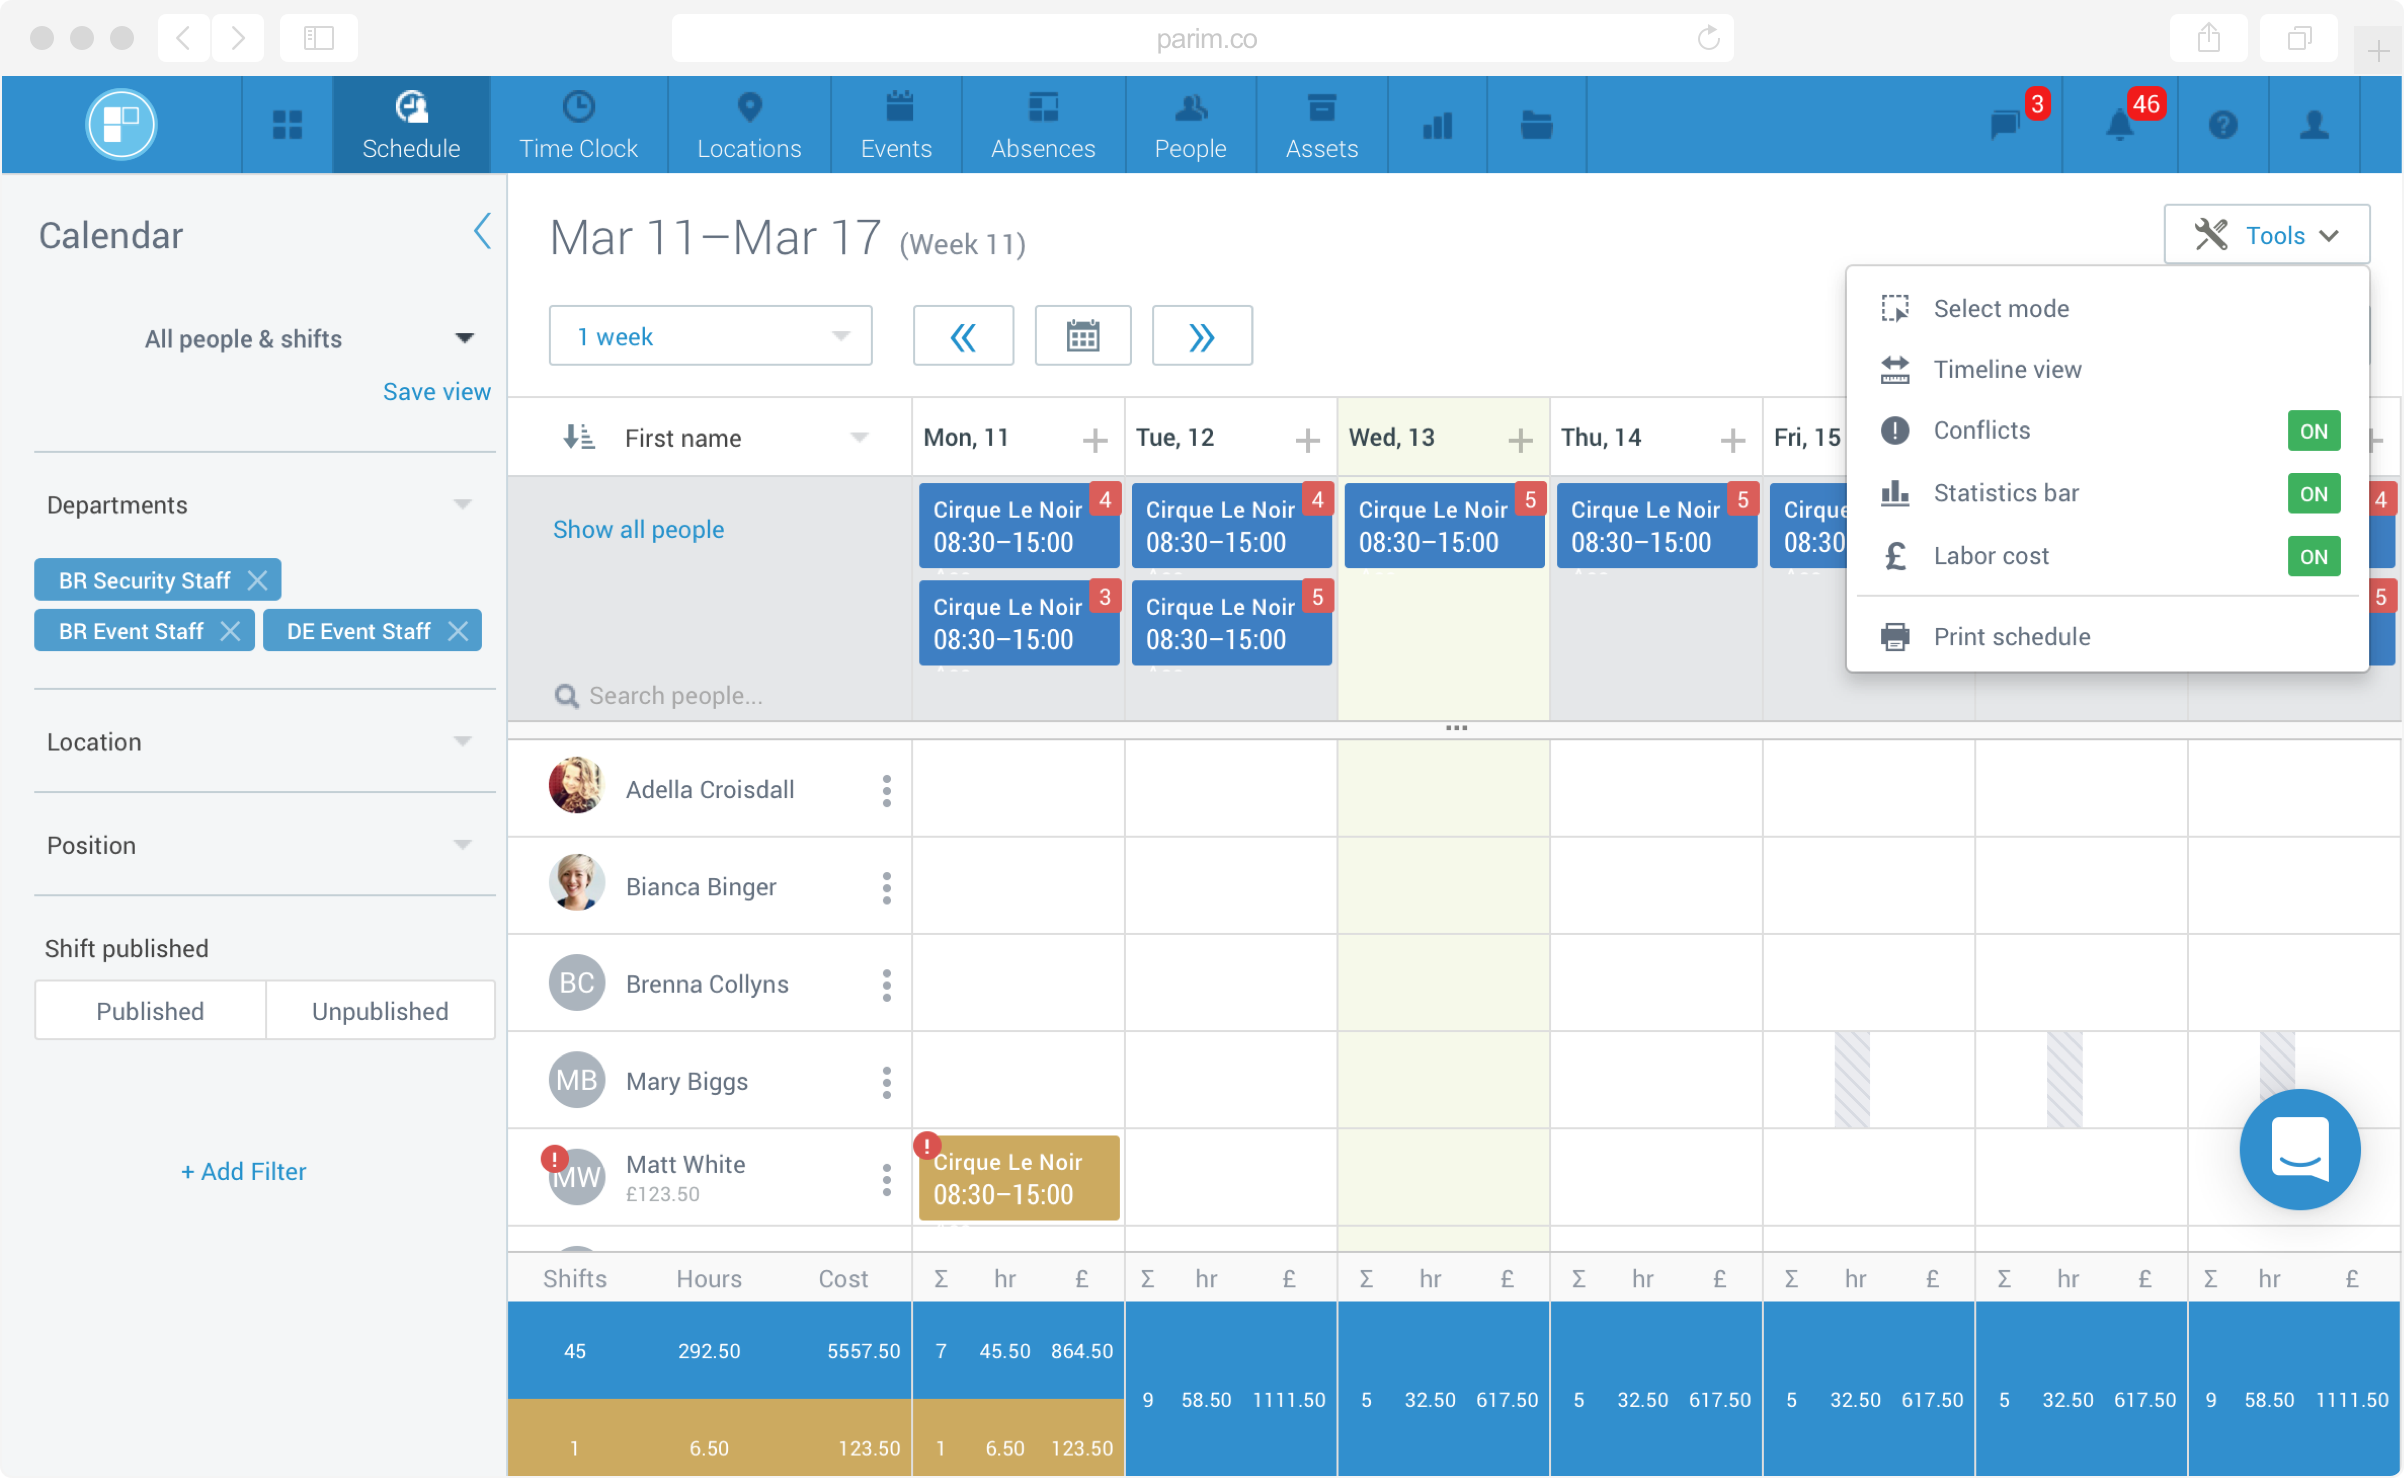 Employee Scheduling in PARiM Workforce Software